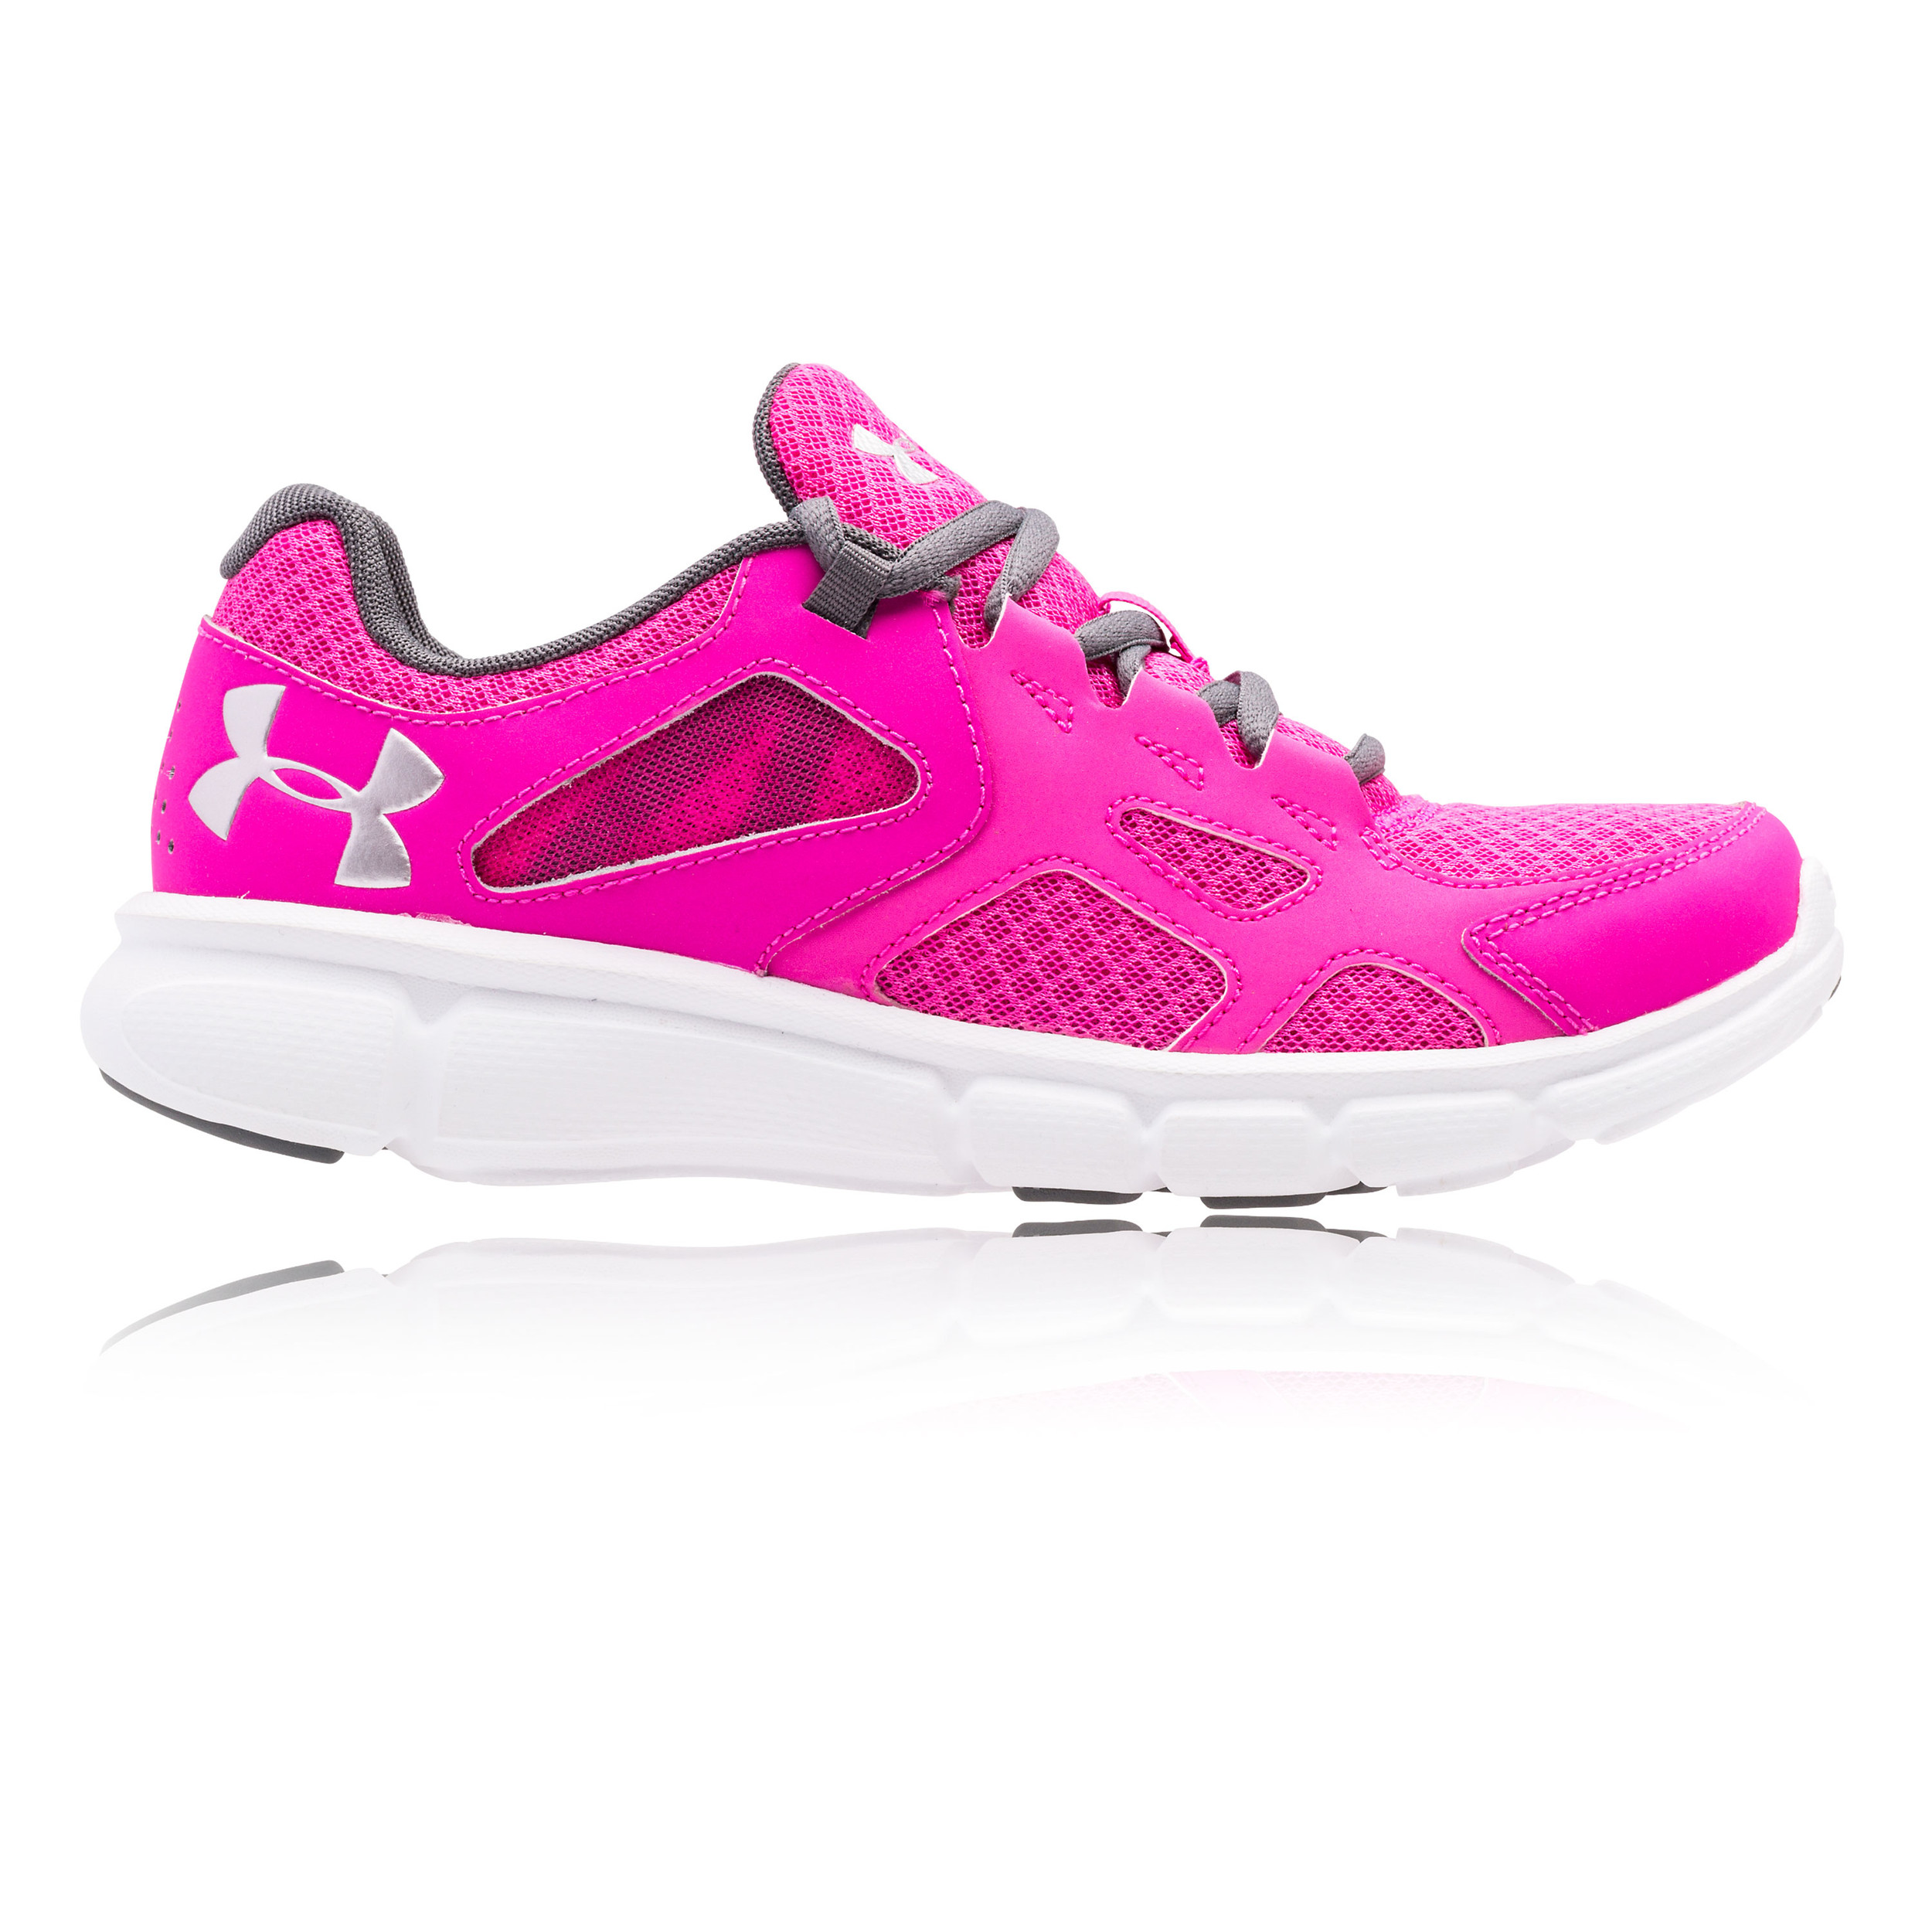 Creative Find This Pin And More On Womens Workwear Under Armour Womens Strobe Pink 1246615 577 Grit OffRoad Trail Shoes The Strobe Pink Uppers Of These Under Armour Shoes Are Made From A Combination Of Find The Technical